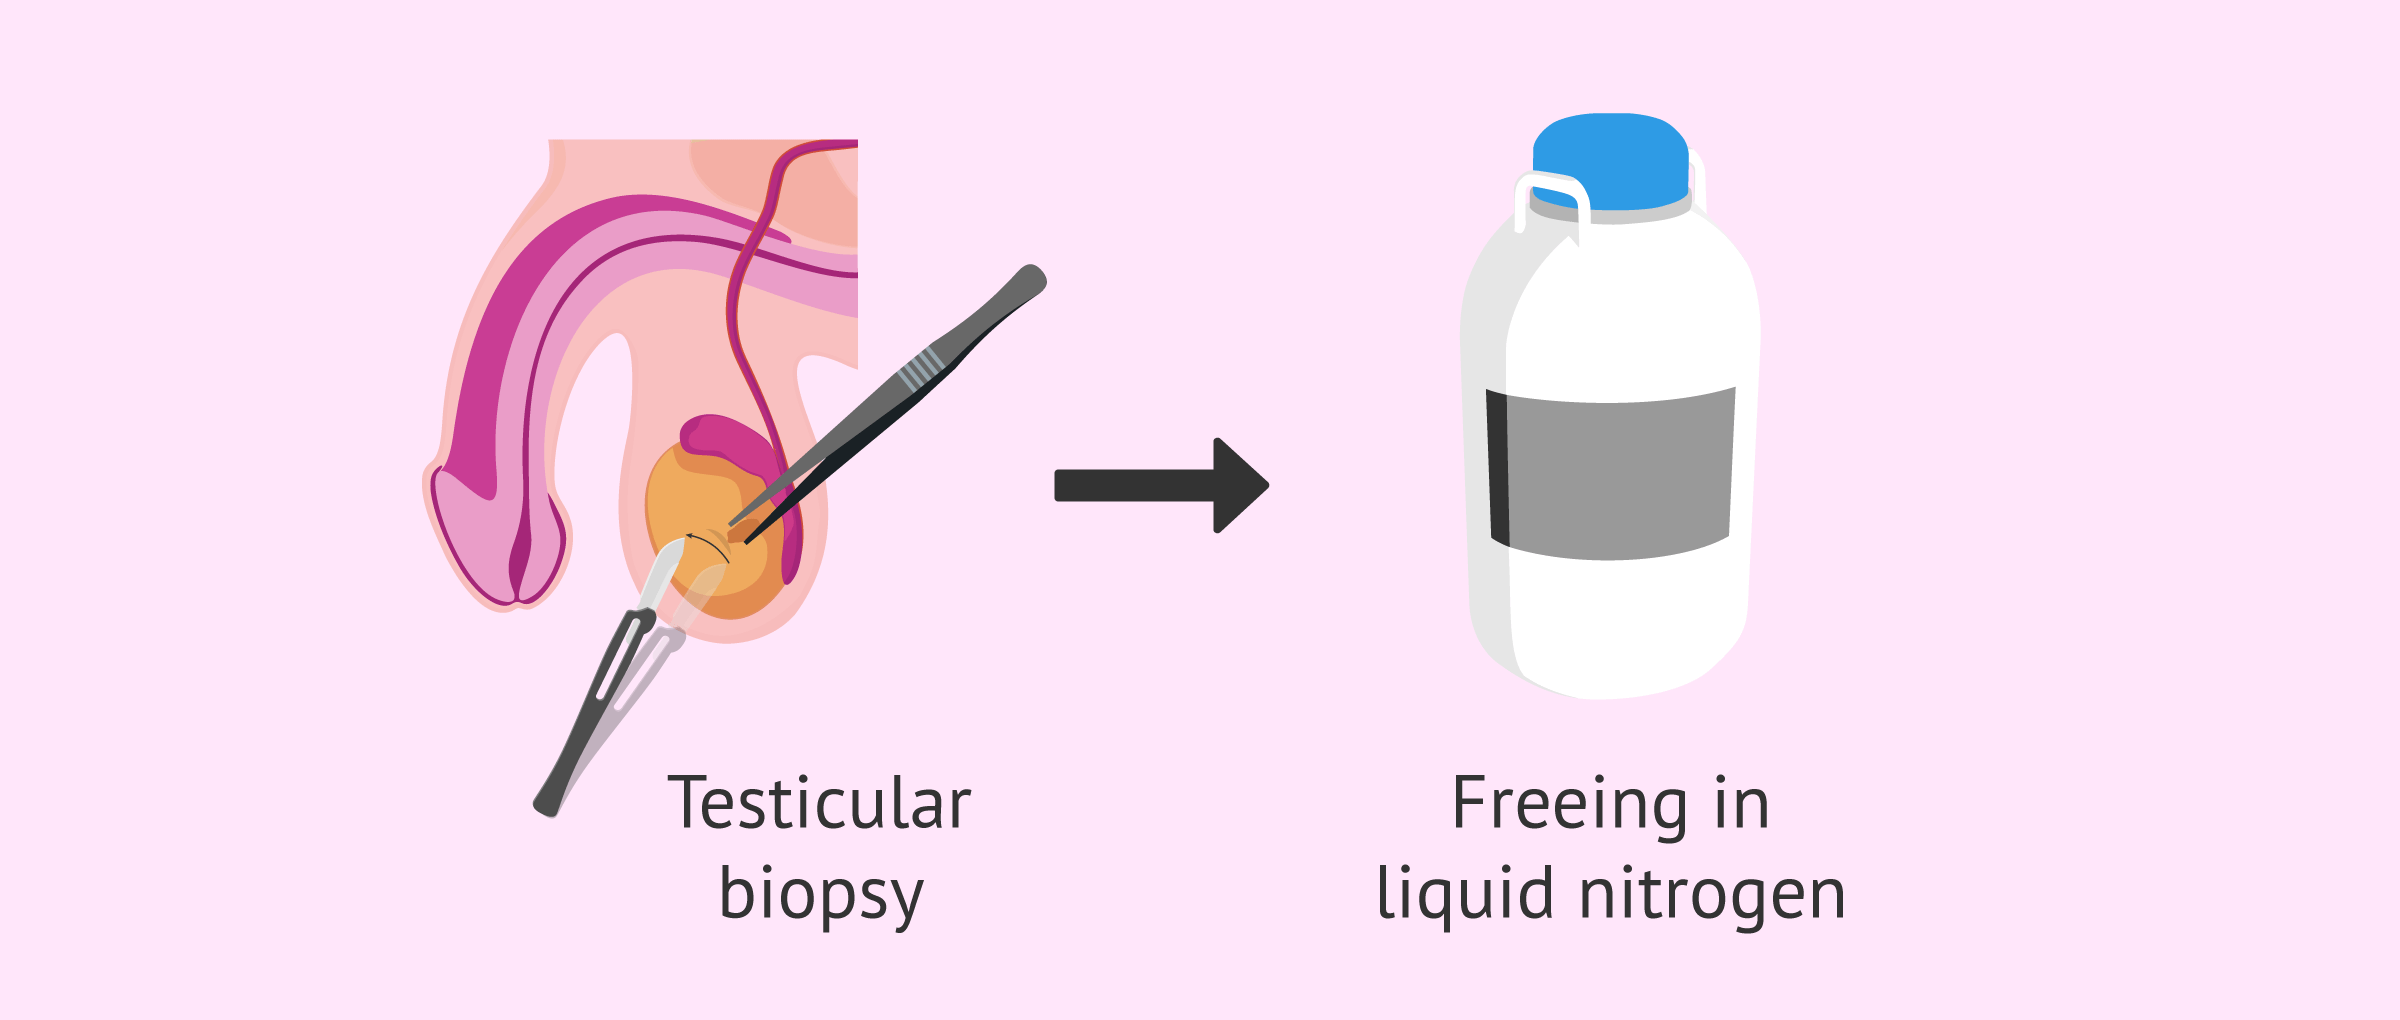 Technique used for the freezing of testicular tissue